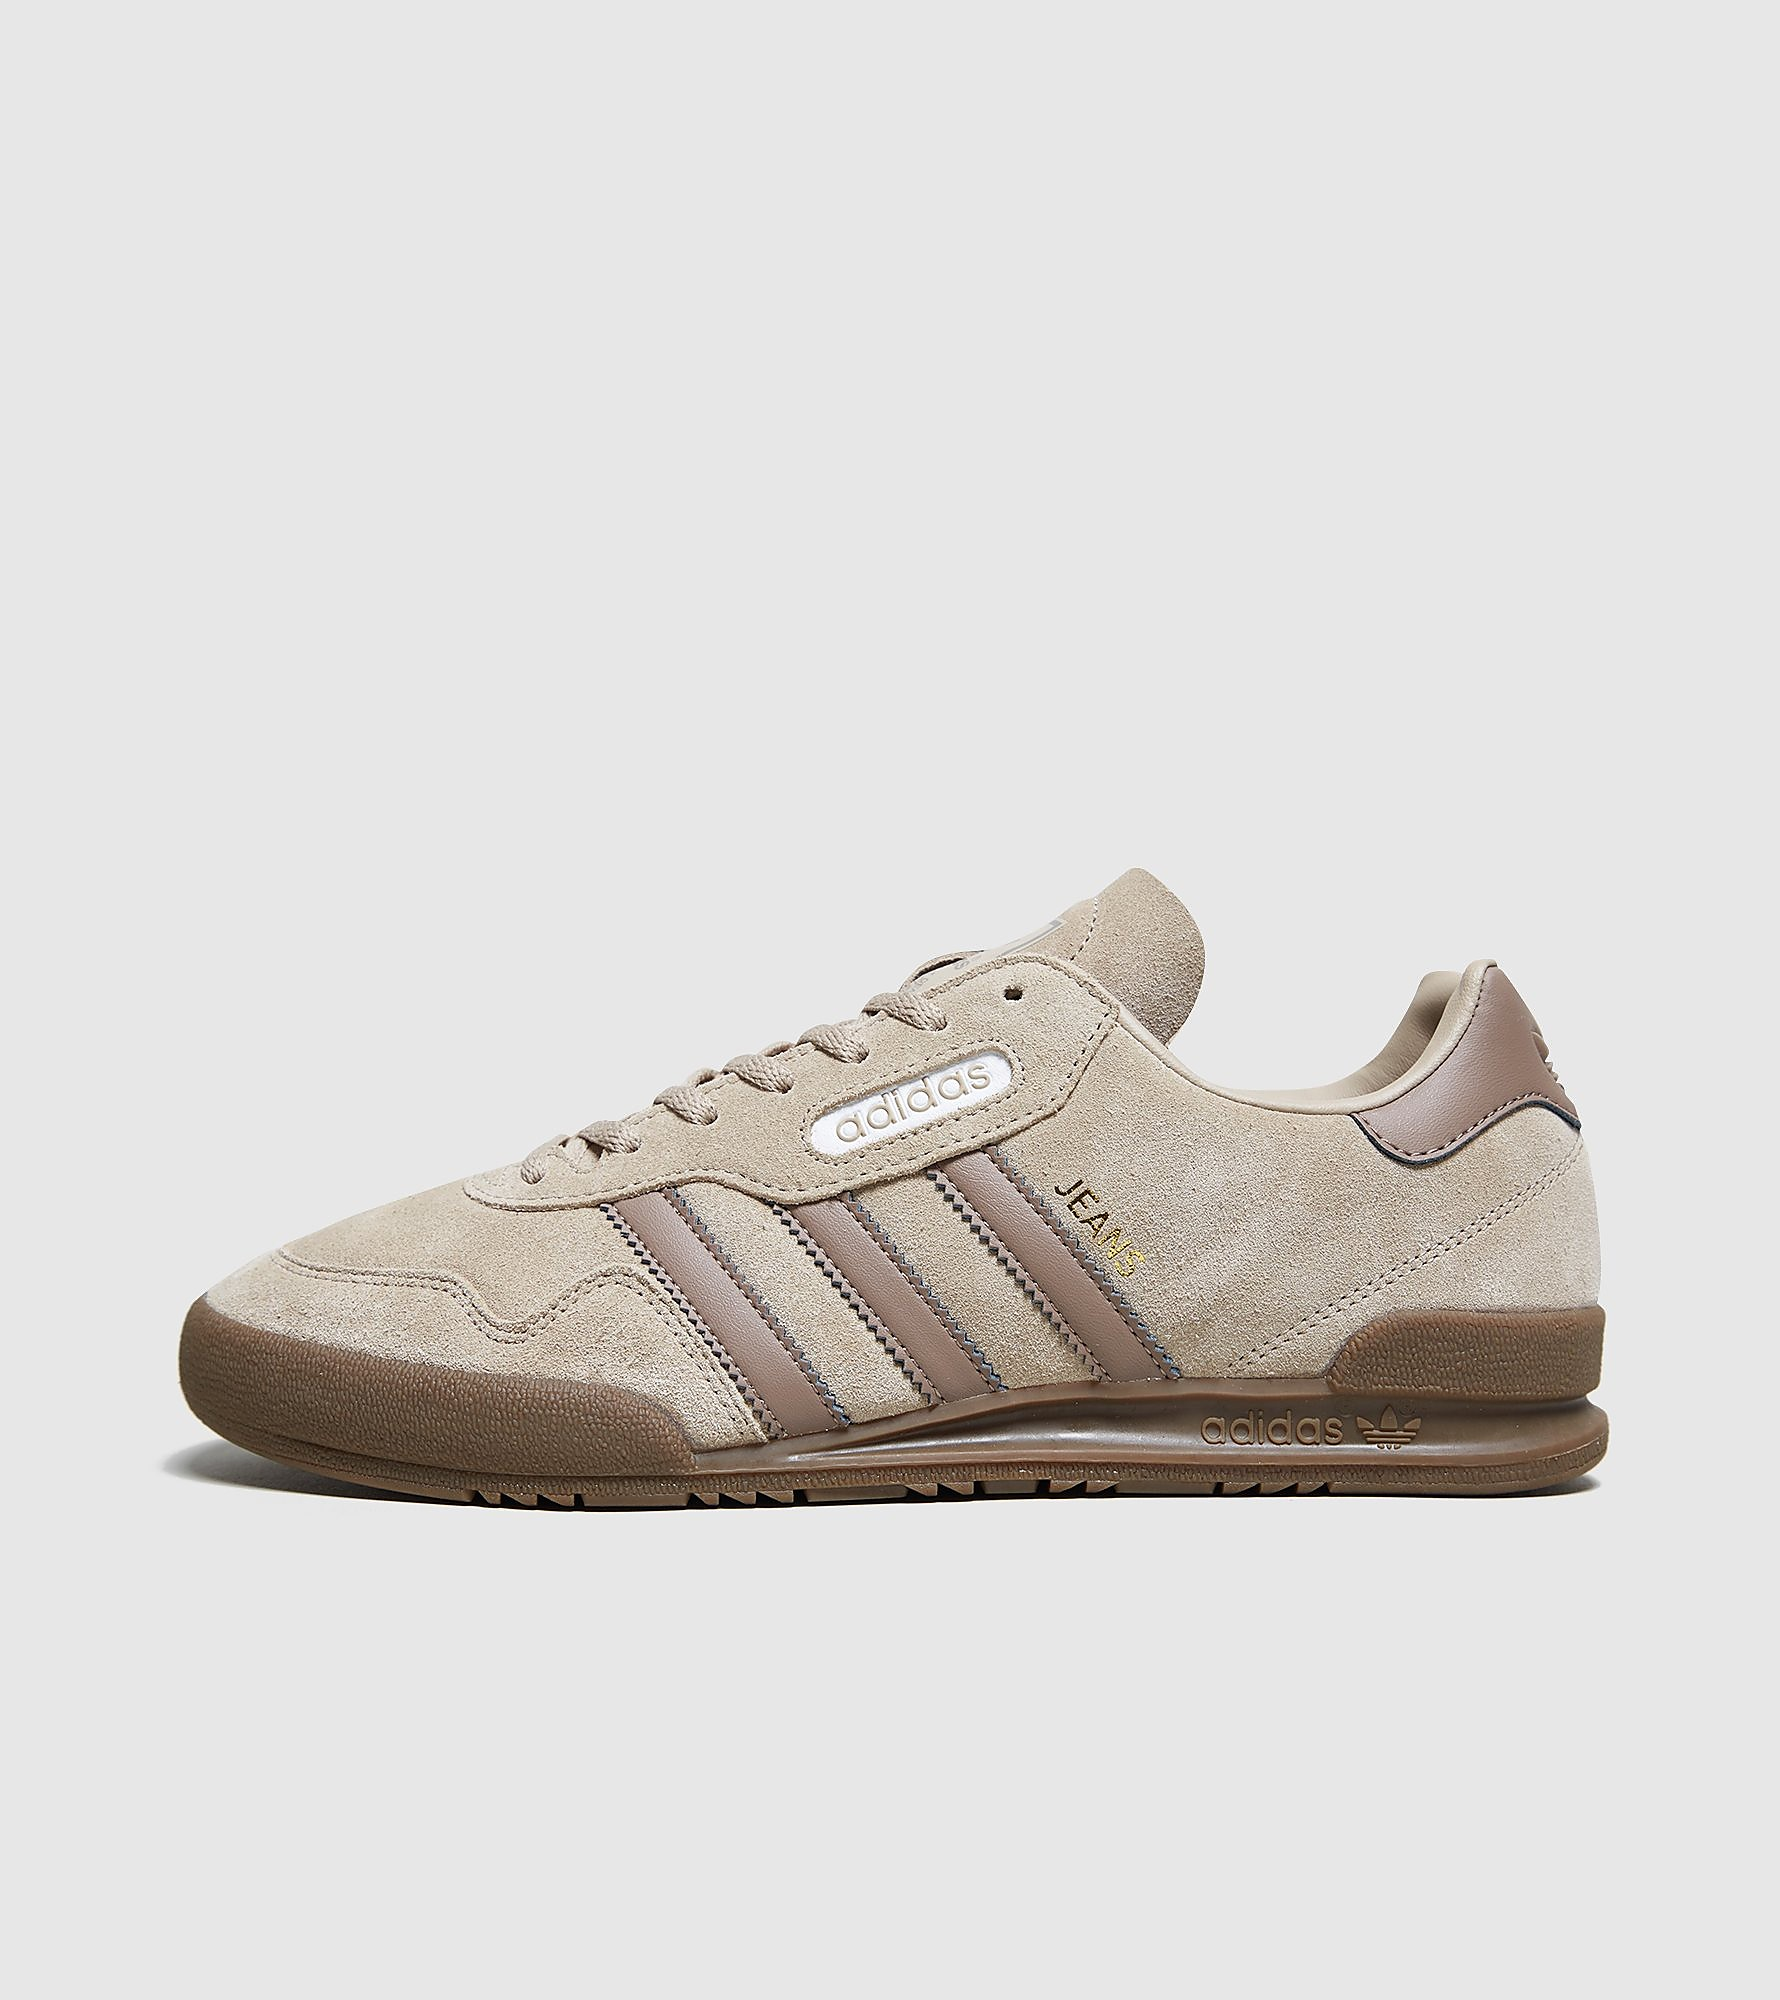 adidas Originals Archive Jeans Super - size? Exclusive